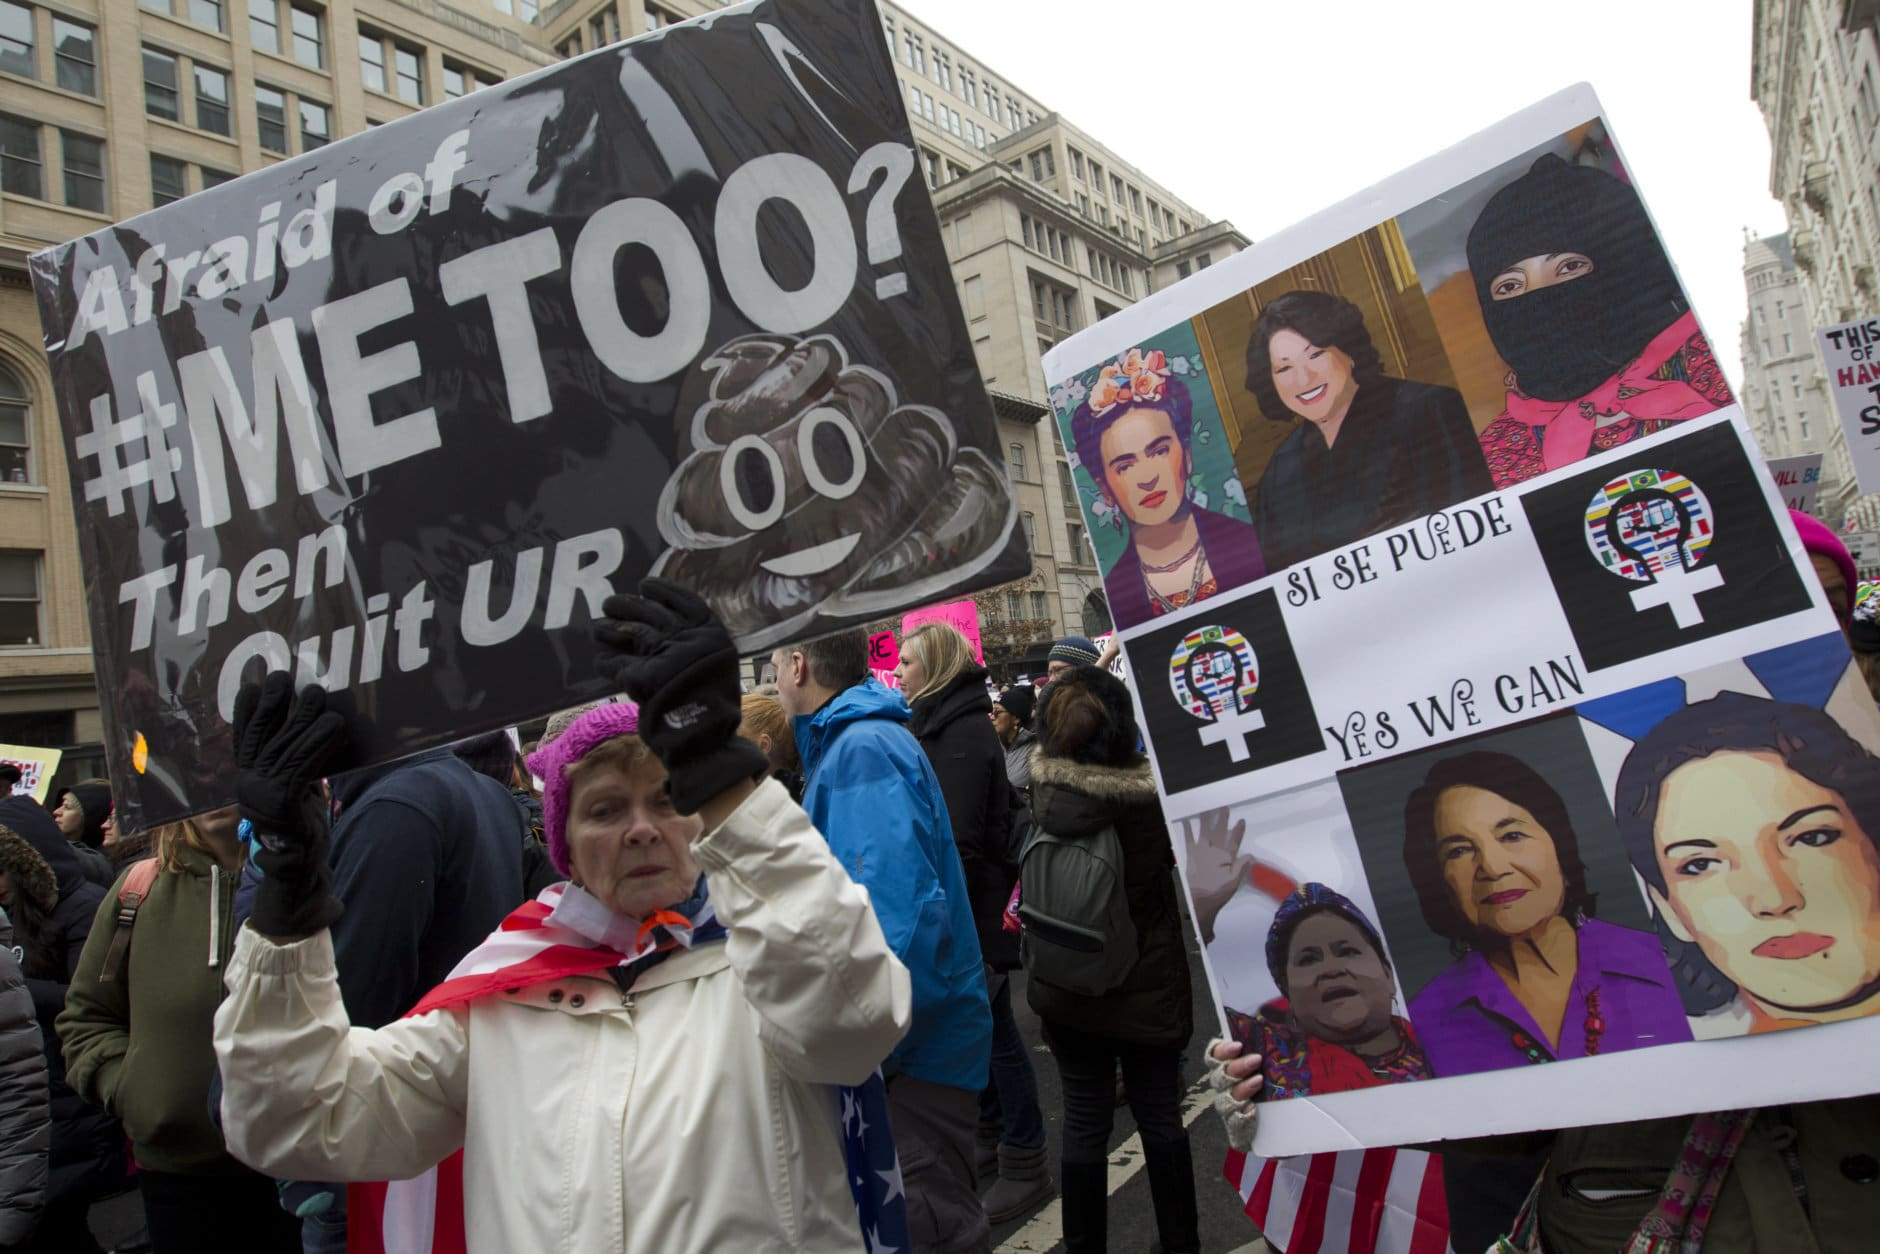 Demonstrators hold signs during the Women's March in Washington on Saturday, Jan. 19, 2019. (AP Photo/Jose Luis Magana)